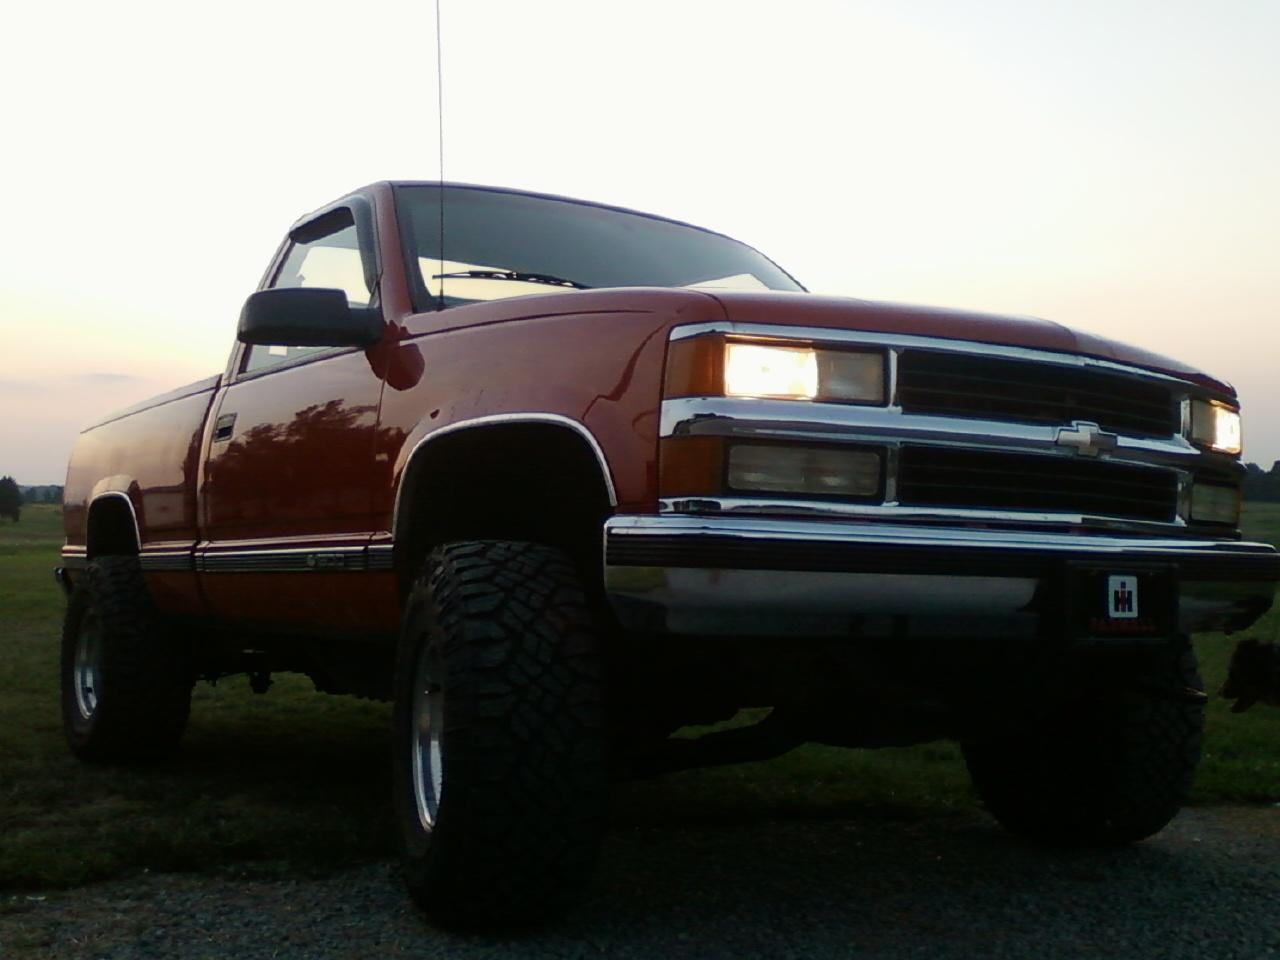 TENNESSEEZ71's 1998 Chevrolet 1500 Regular Cab